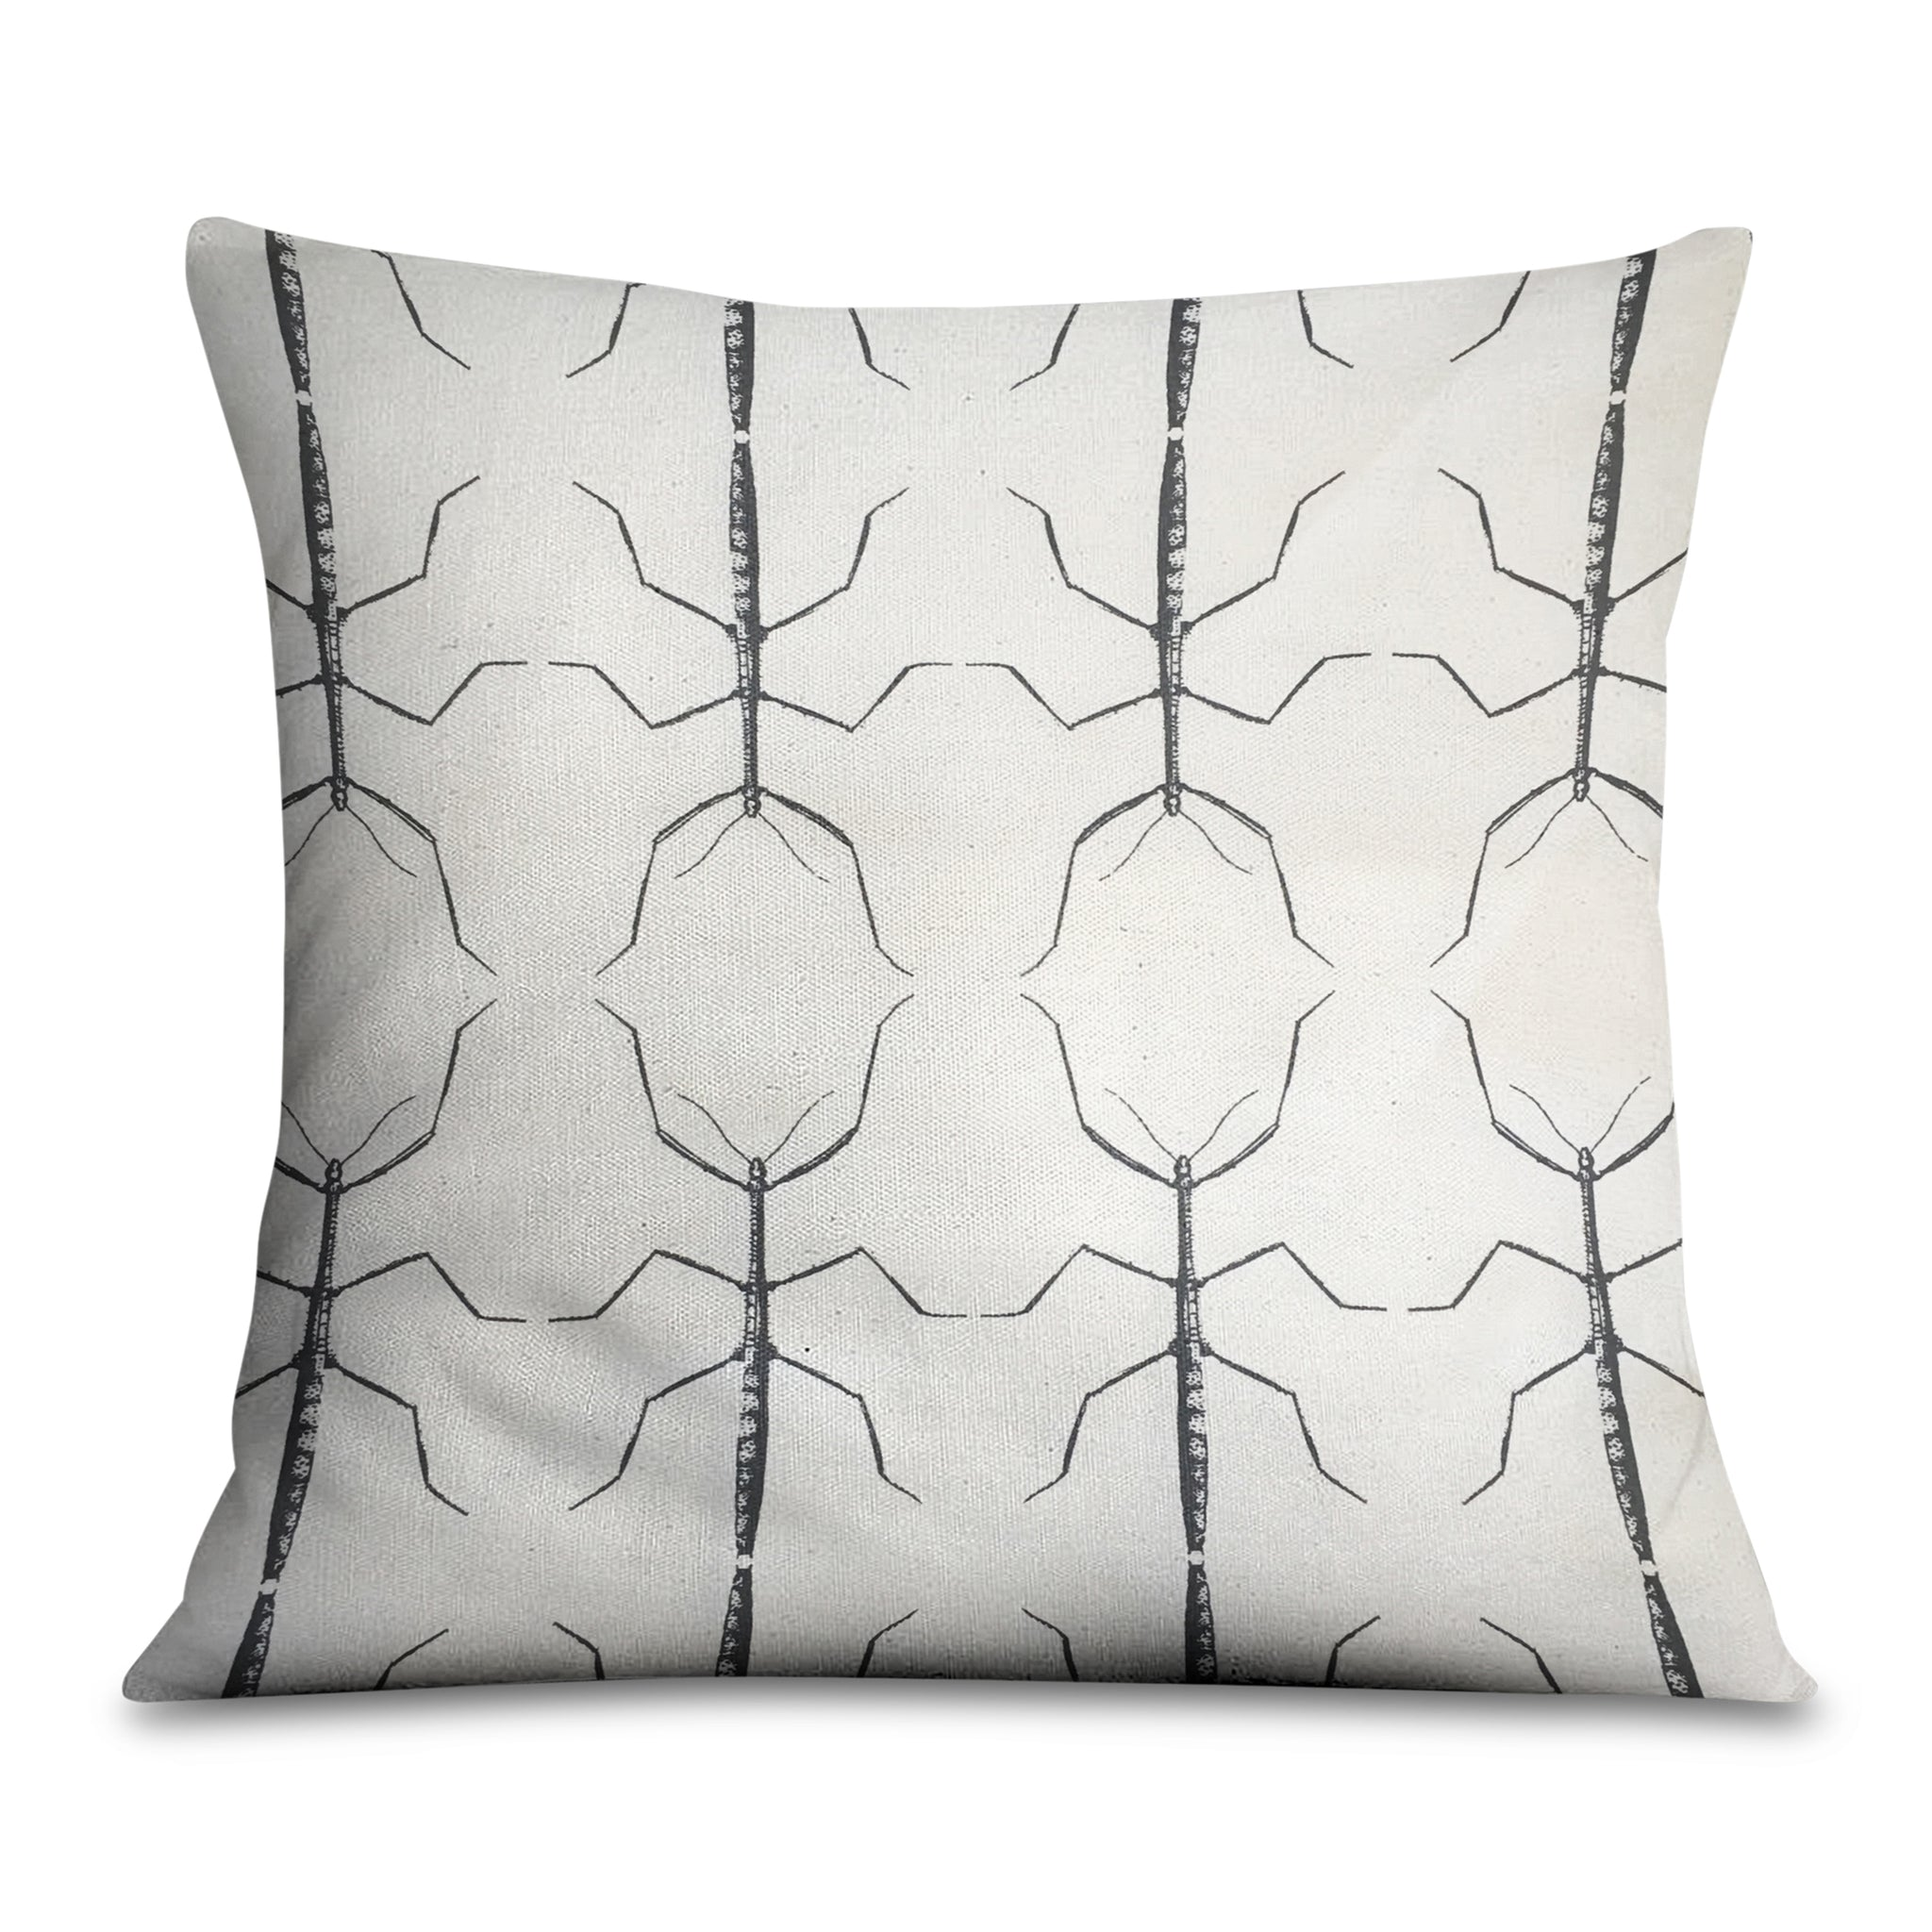 Stickbug Pillow